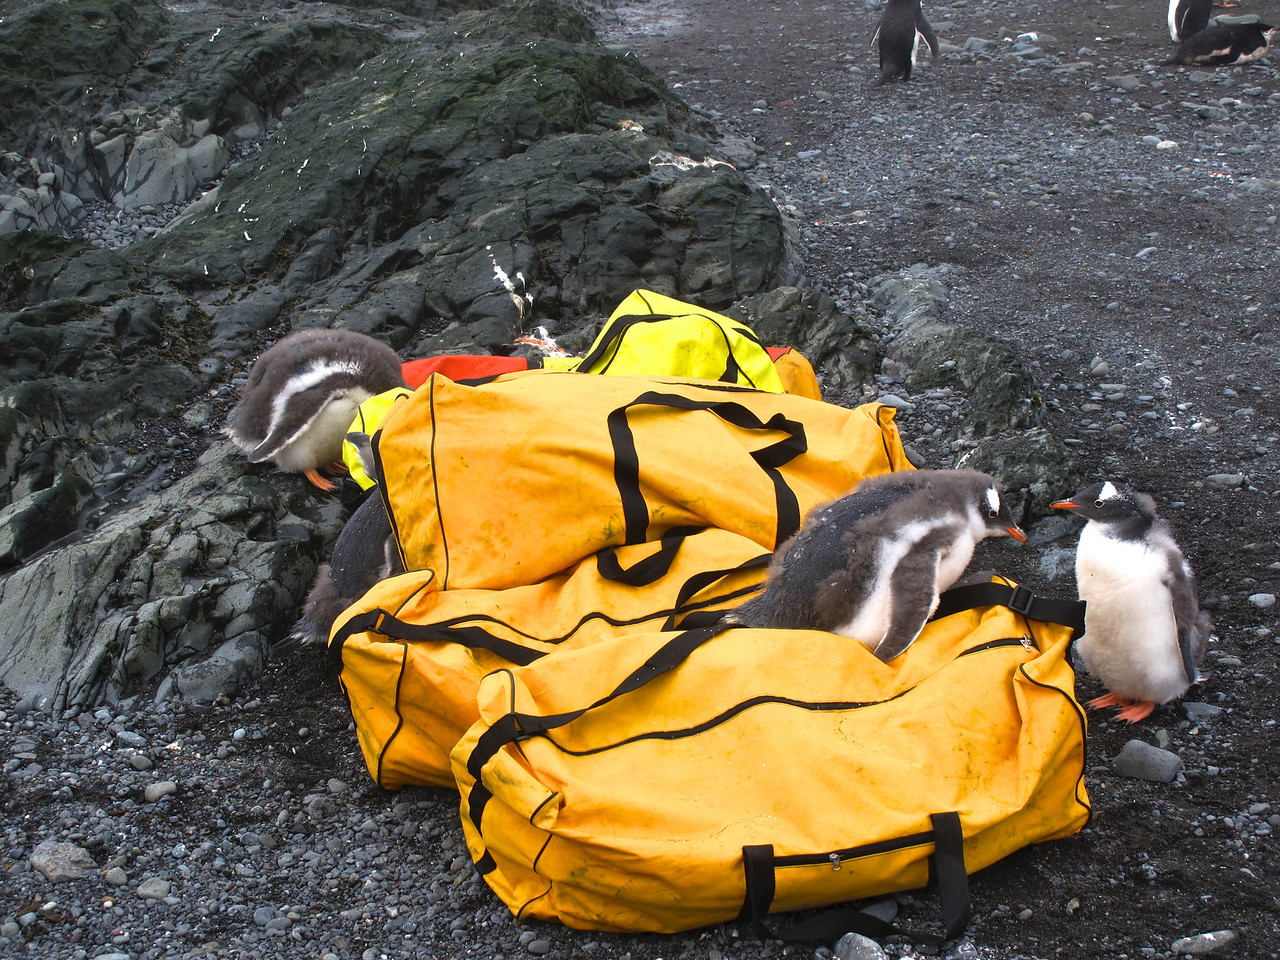 Since the penguins have no fear of man, since they are not hunted, they're very inquisitive.